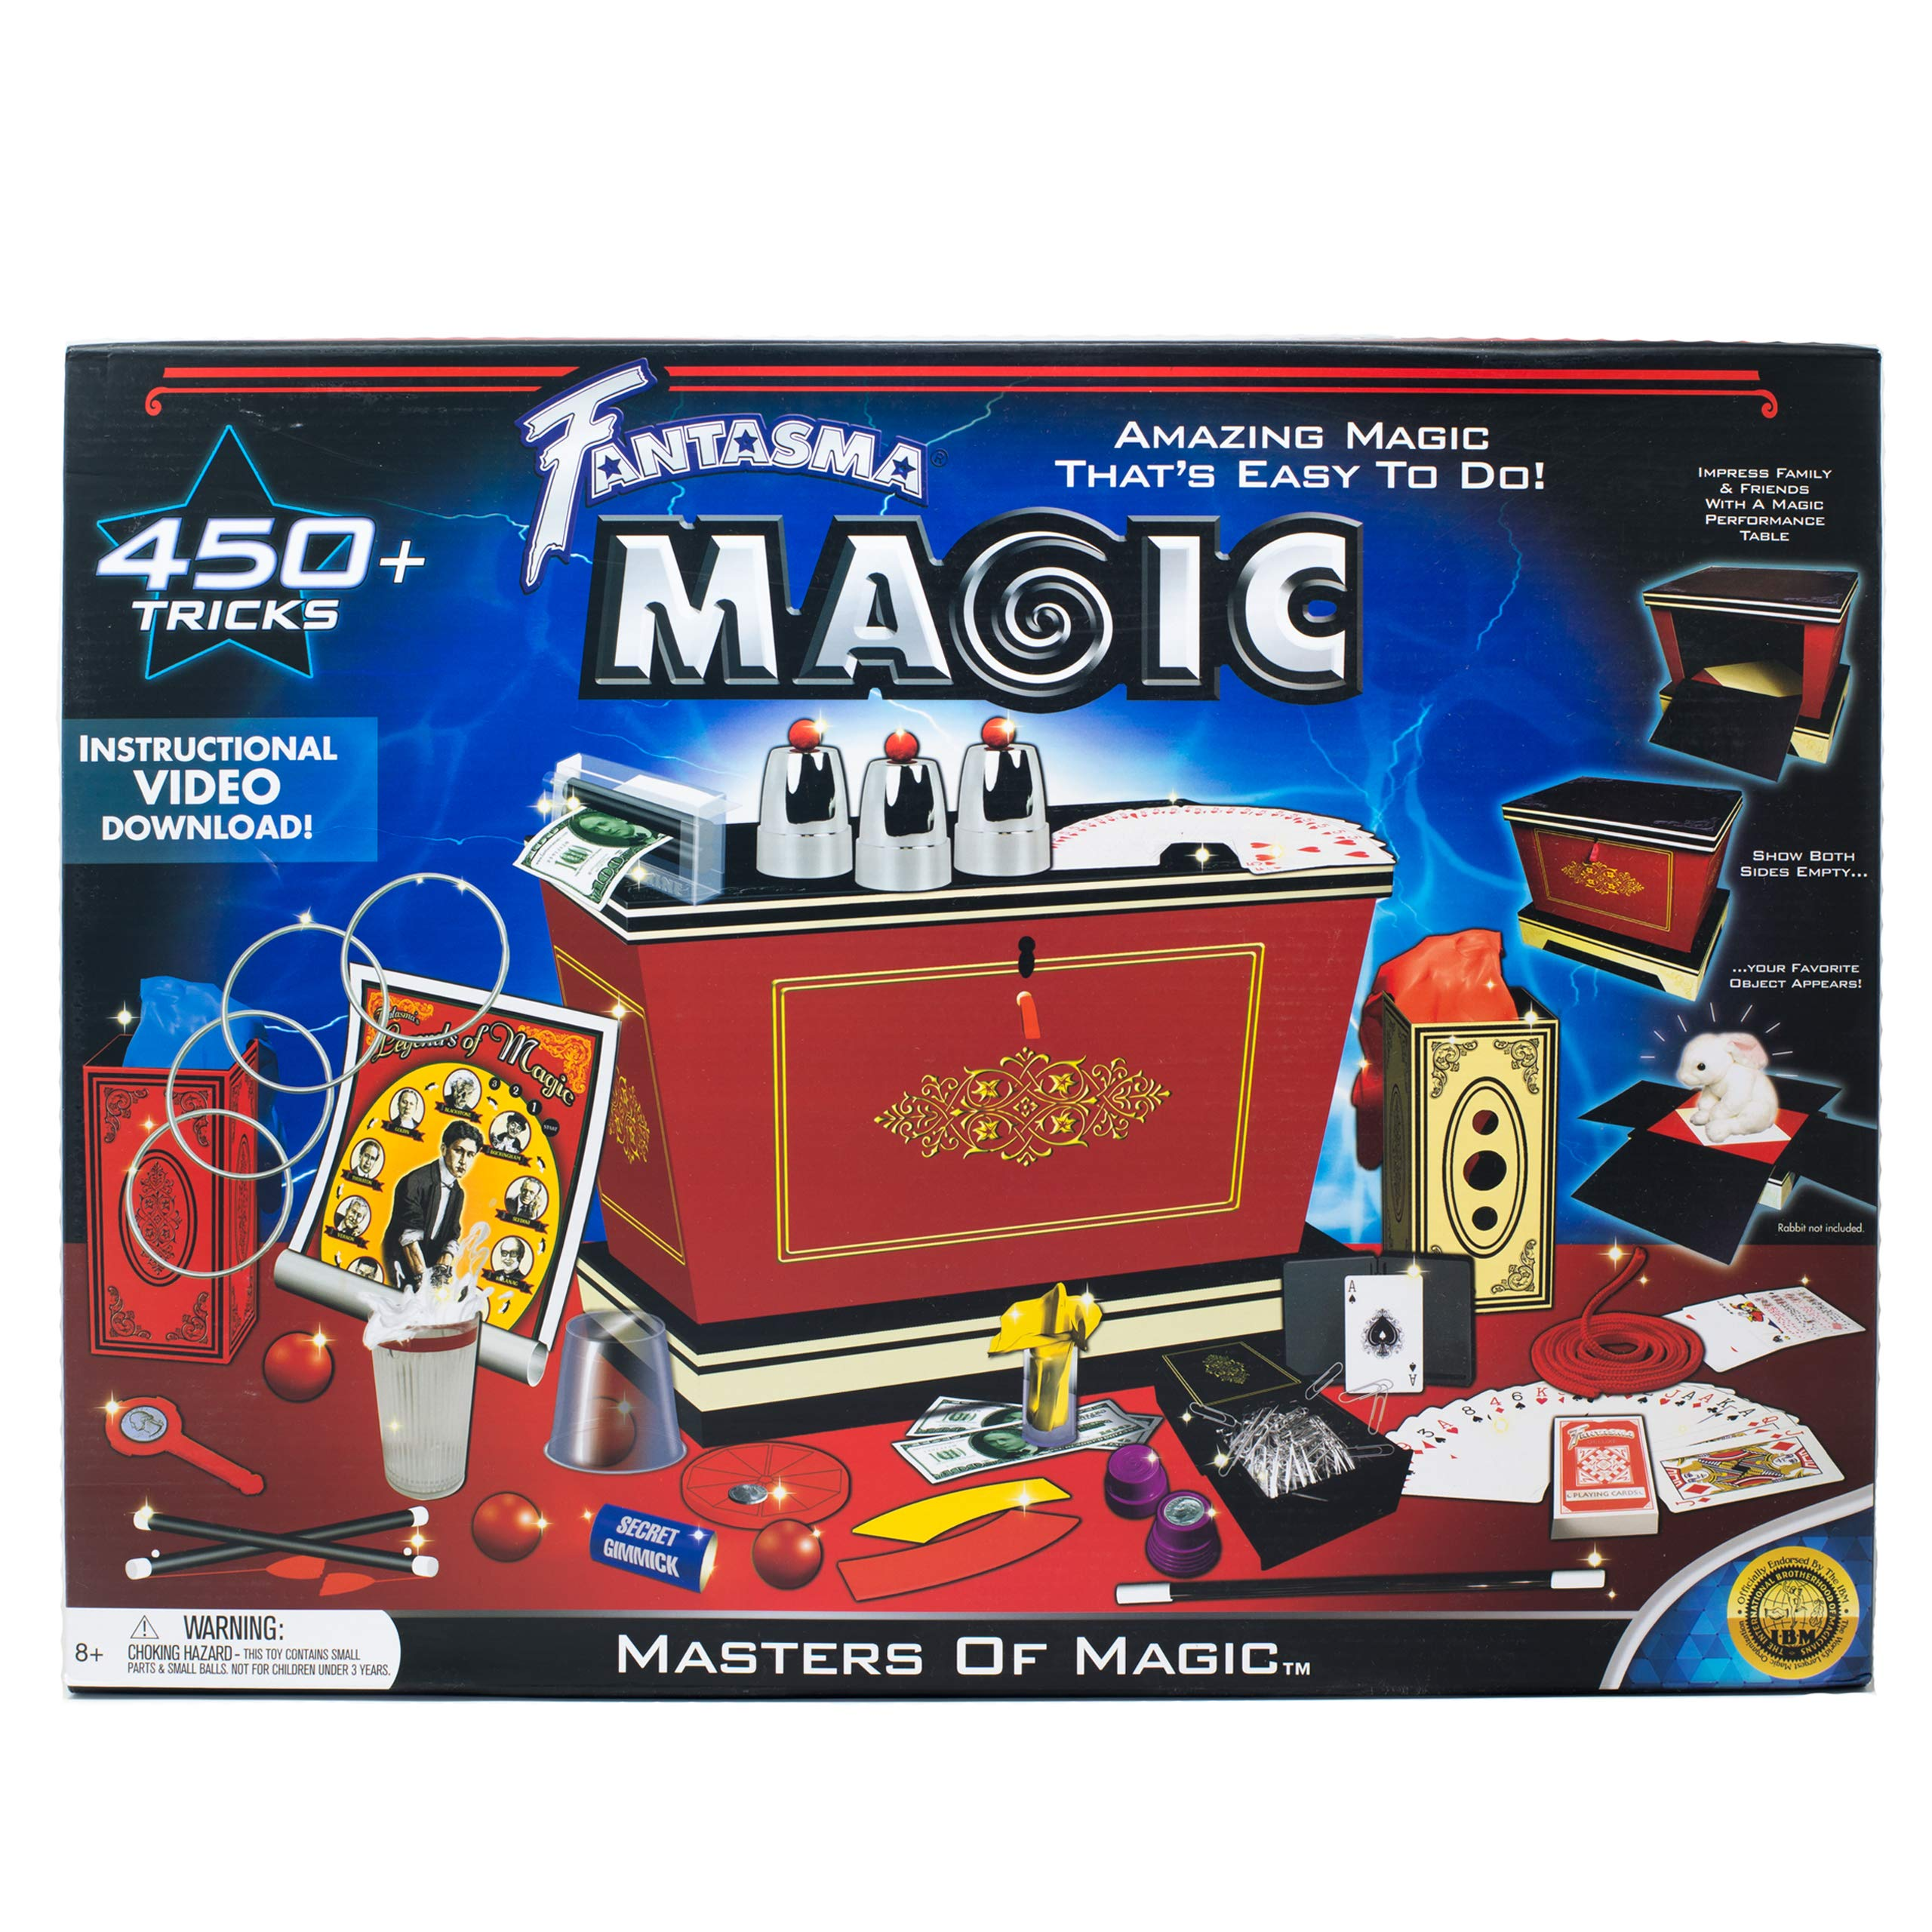 Fantasma Masters of Magic Set - Starter Magic Kit for Kids and Adults - Learn 450+ Magic Tricks - Boys and Girls Ages 8 and Older by Fantasma